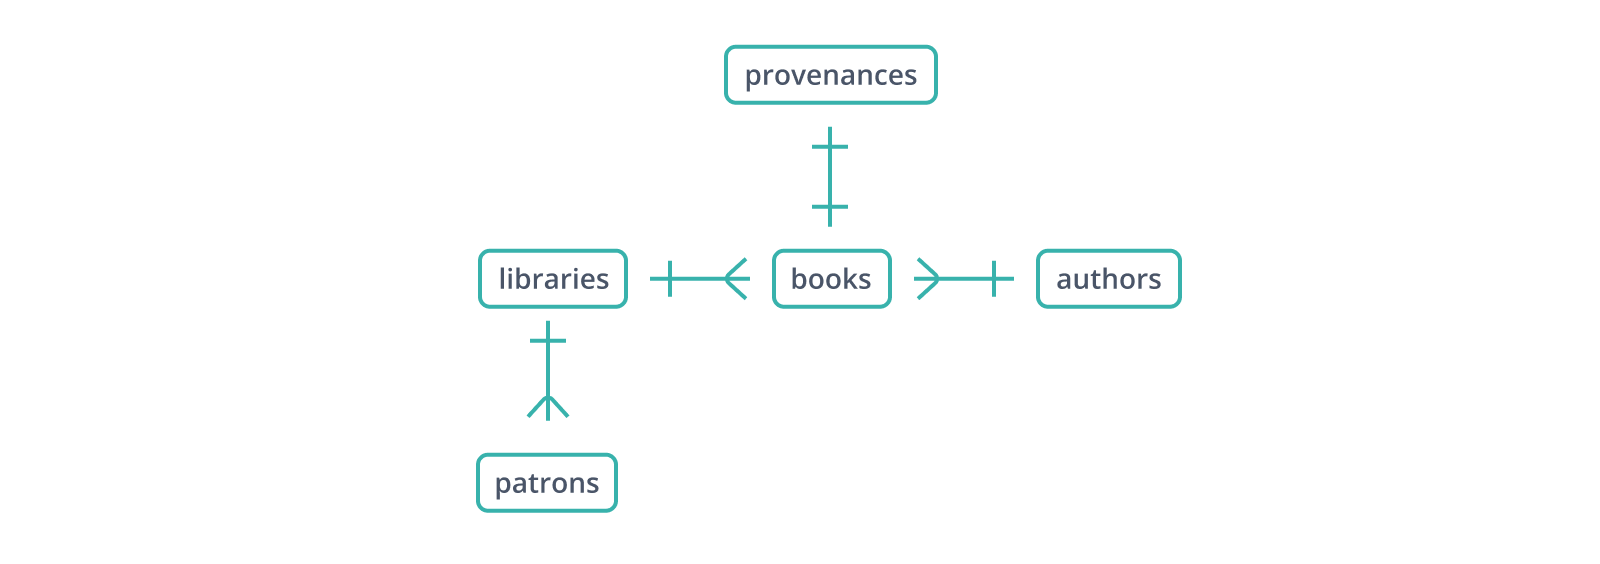 Expanding the libraries schema to begin tracking provenance for individual books.